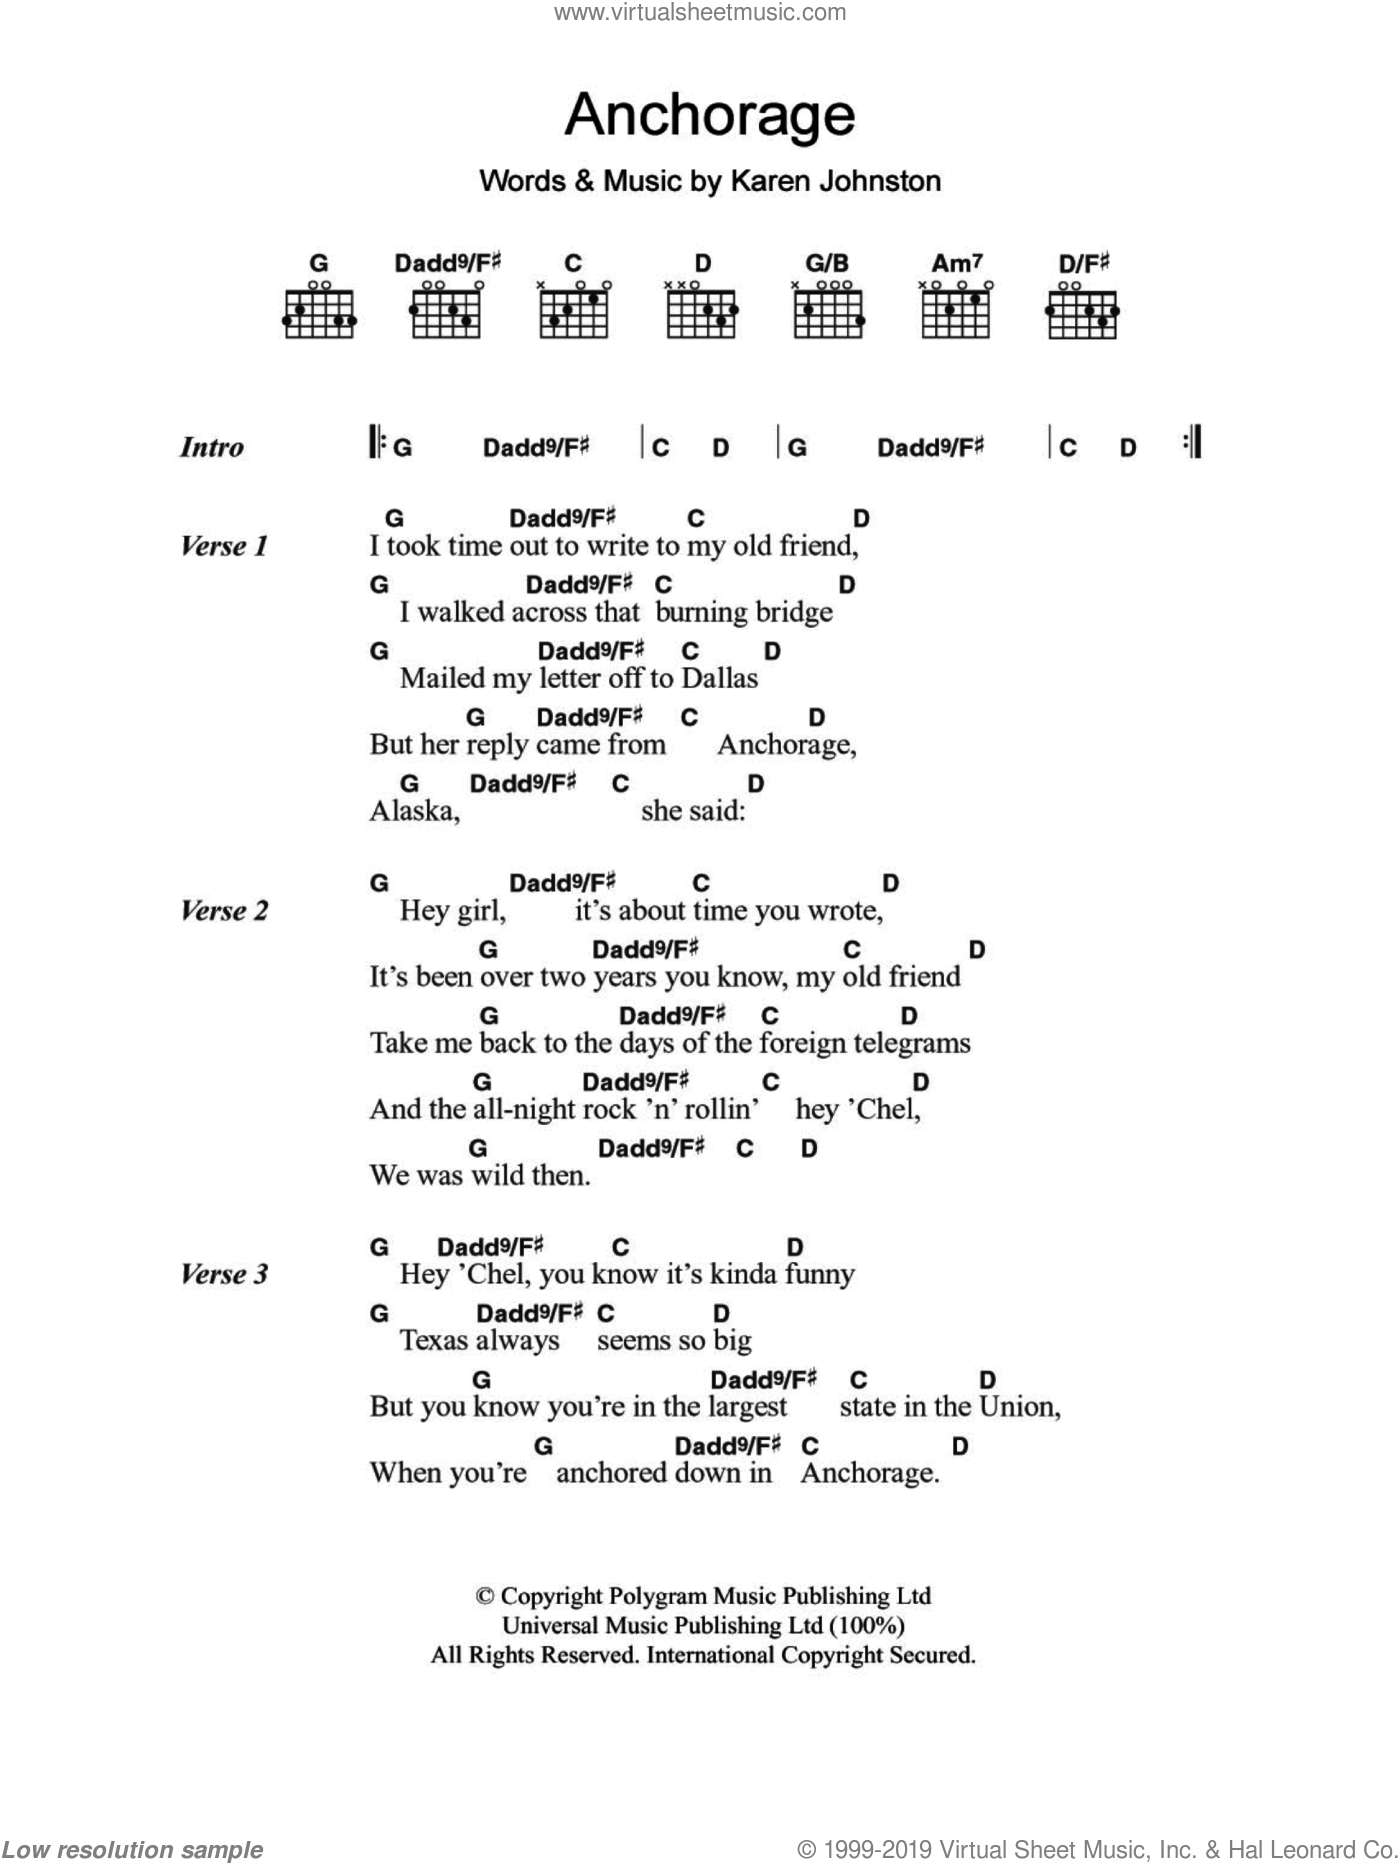 Anchorage sheet music for guitar (chords, lyrics, melody) by Karen Johnston